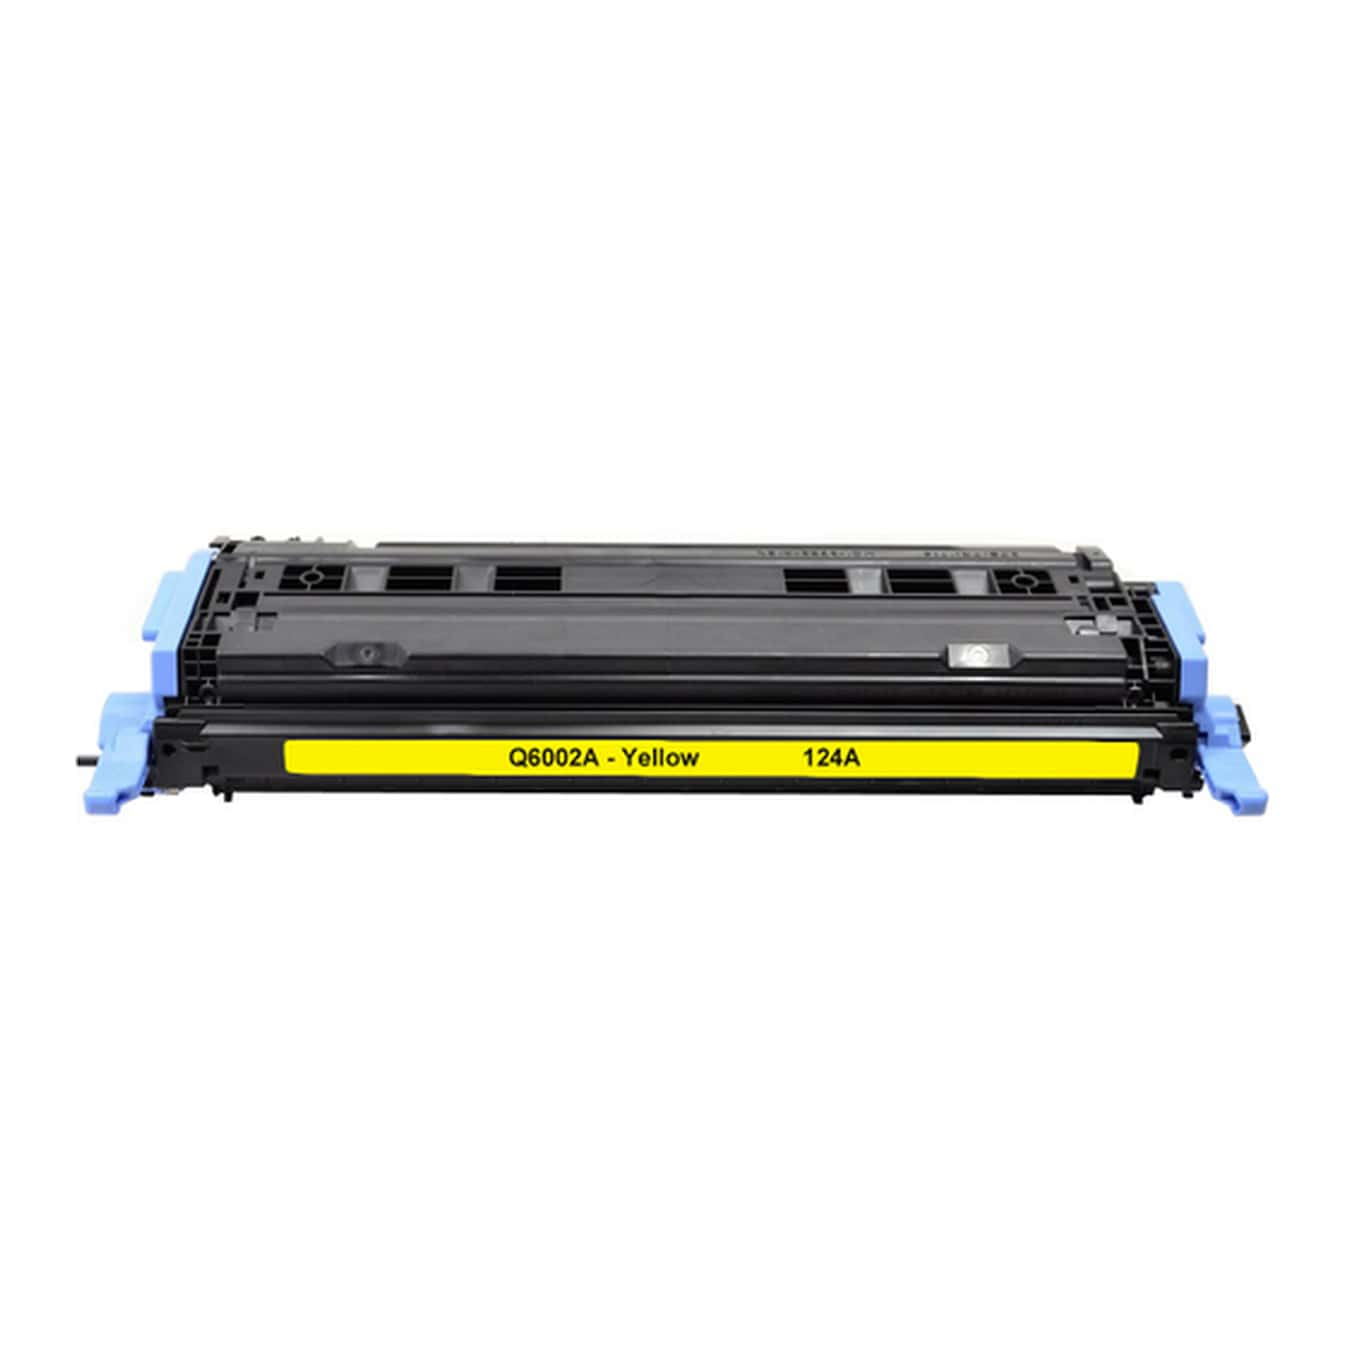 Q6002A Toner Cartridge - HP Remanufactured  (Yellow)